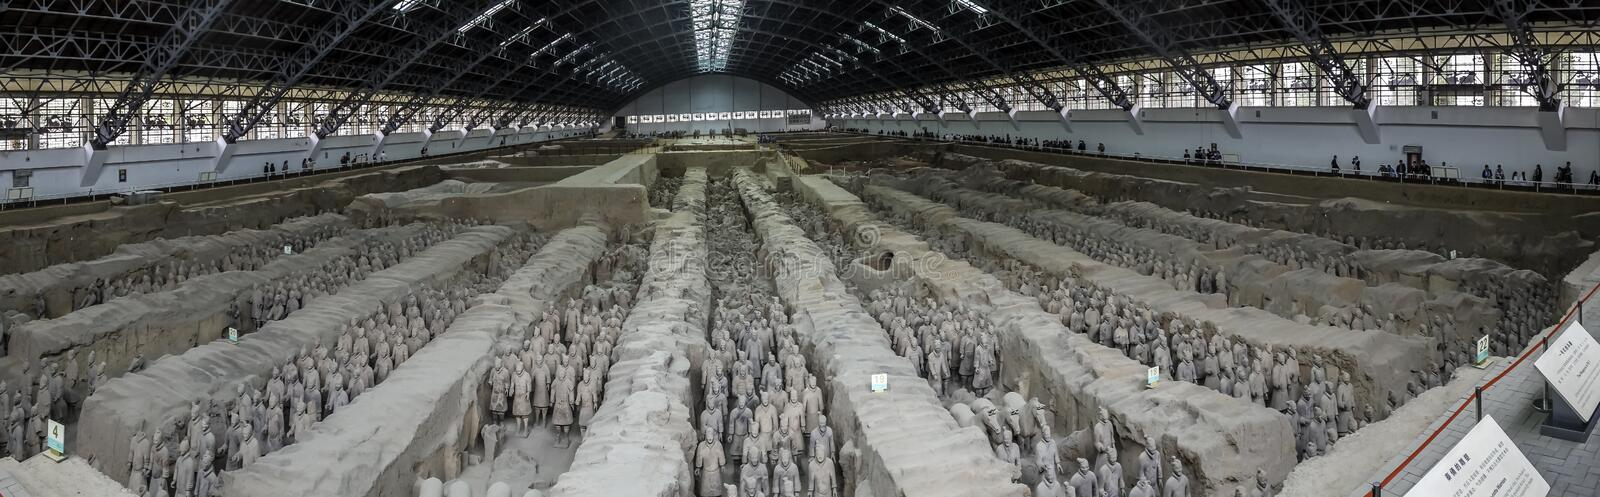 The Terracotta Warriors and Horses royalty free stock photography